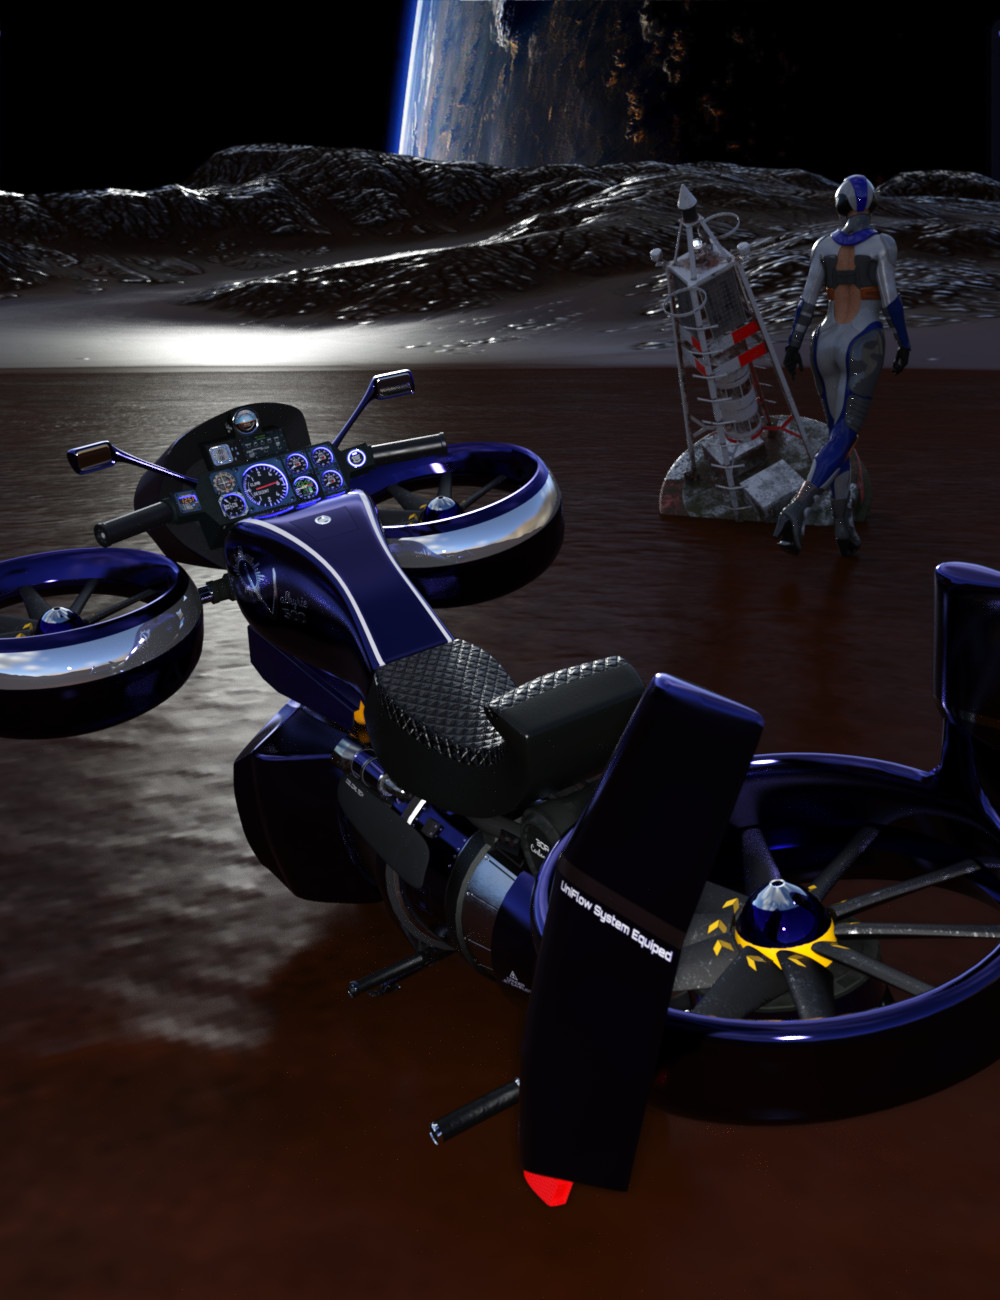 Valkyrie Cruiser by: nEO, 3D Models by Daz 3D